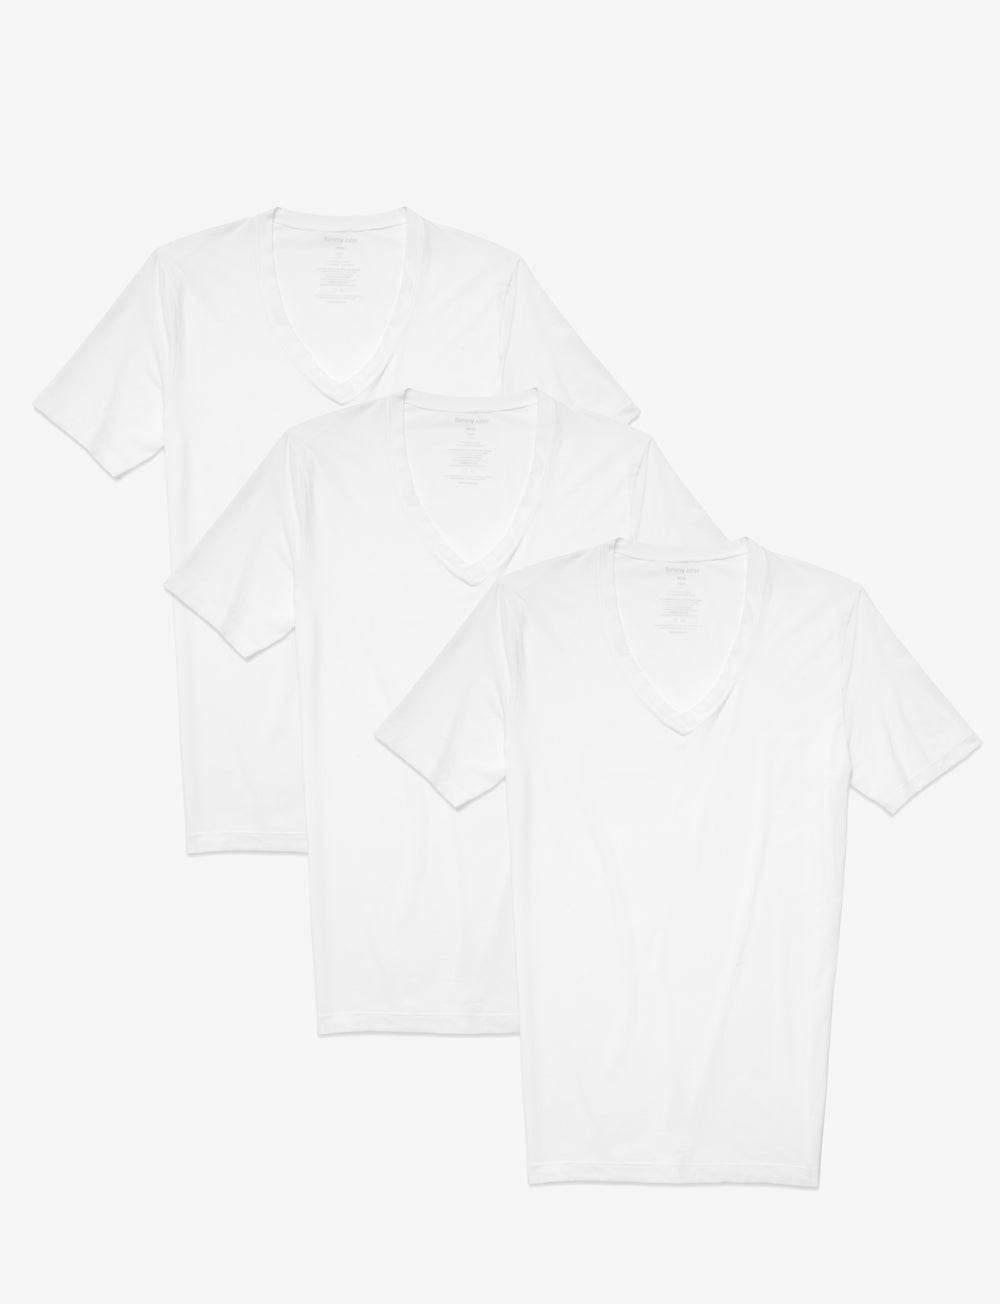 Air Deep V-Neck Undershirt 3 Pack Details Image